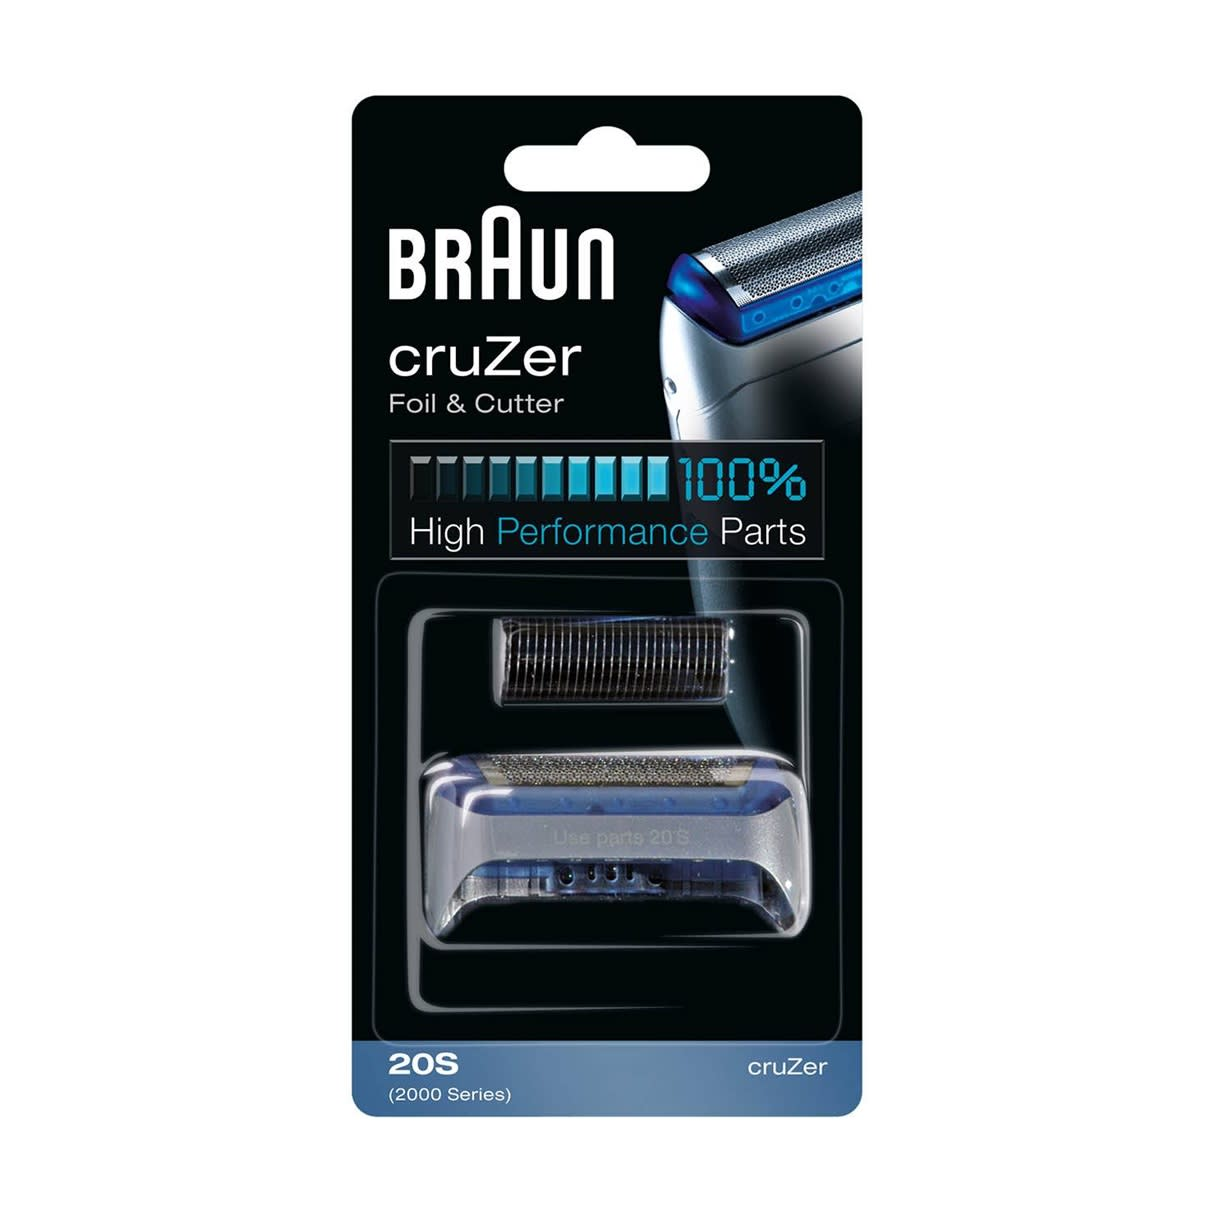 1-Braun-20S-shavers-replacement-parts